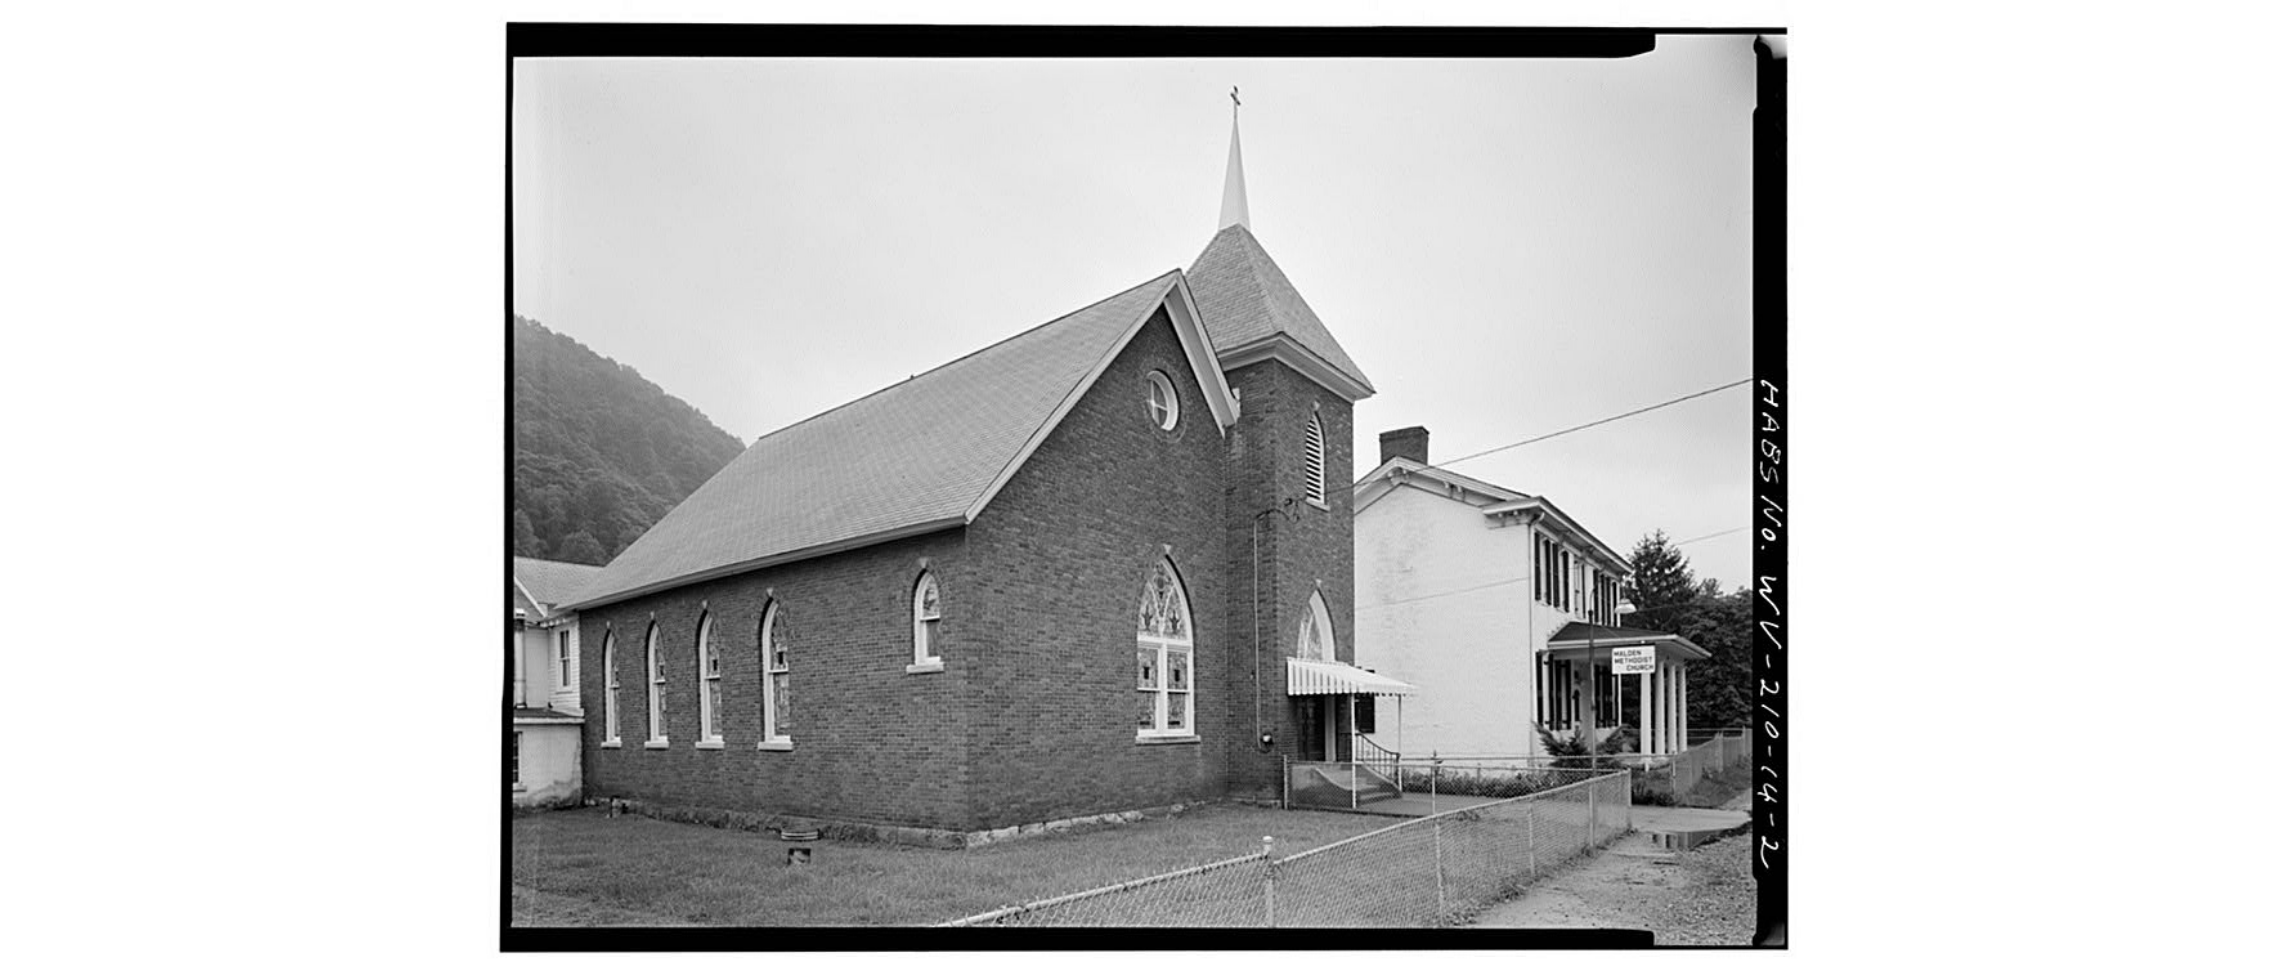 Malden Methodist Church, from northwest, circa 1980